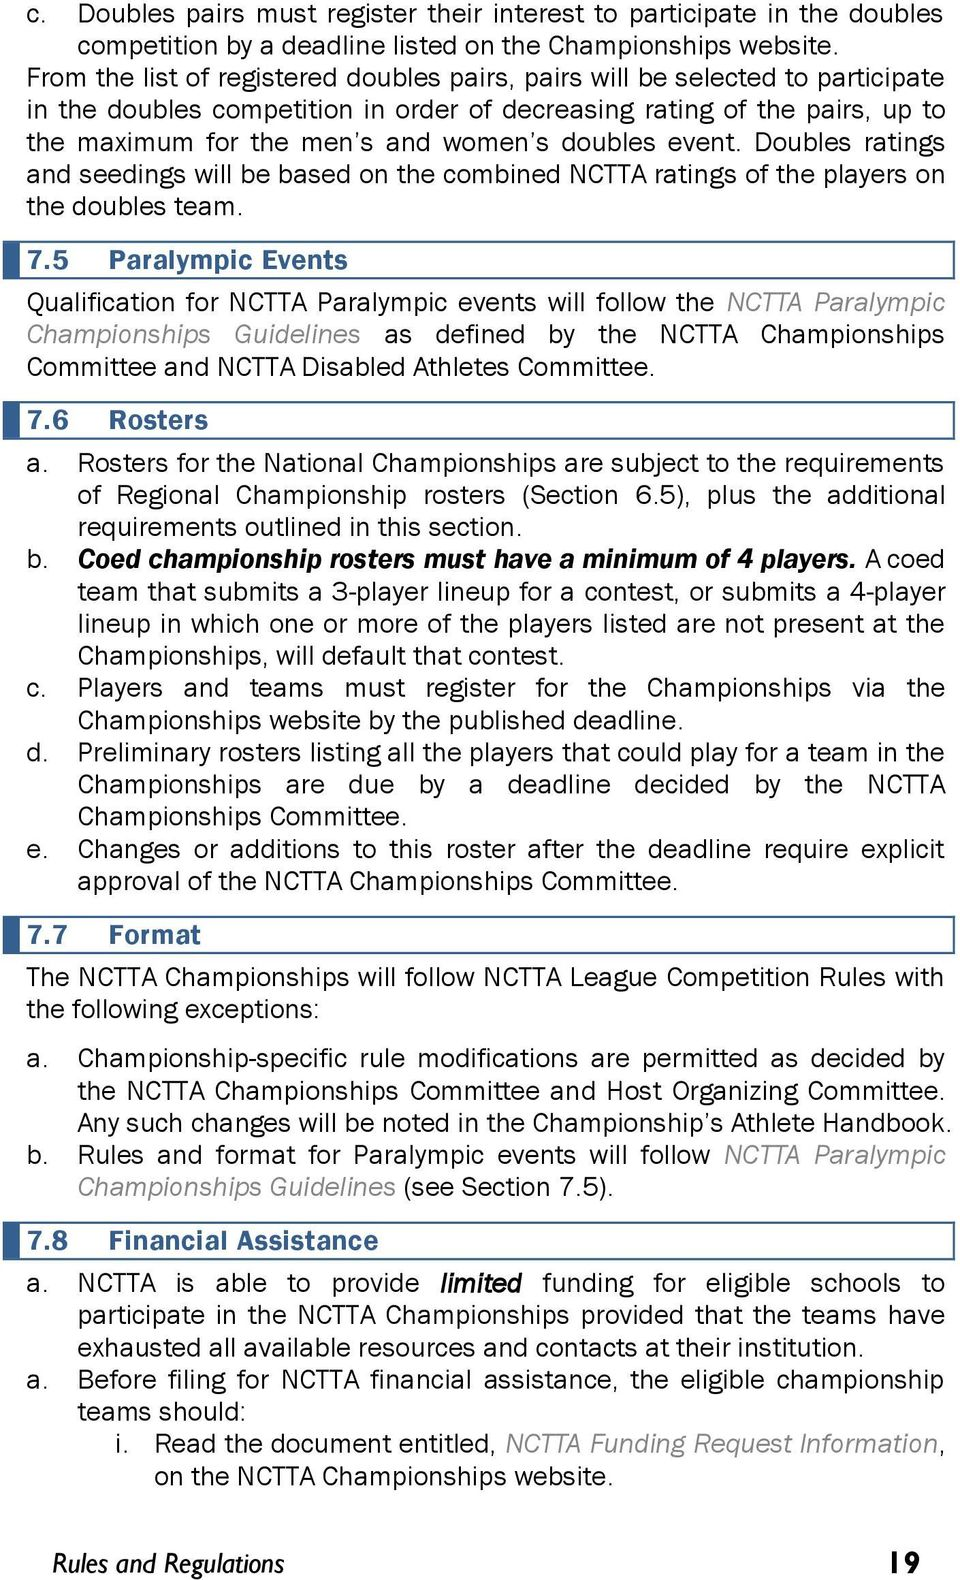 doubles event. Doubles ratings and seedings will be based on the combined NCTTA ratings of the players on the doubles team. 7.